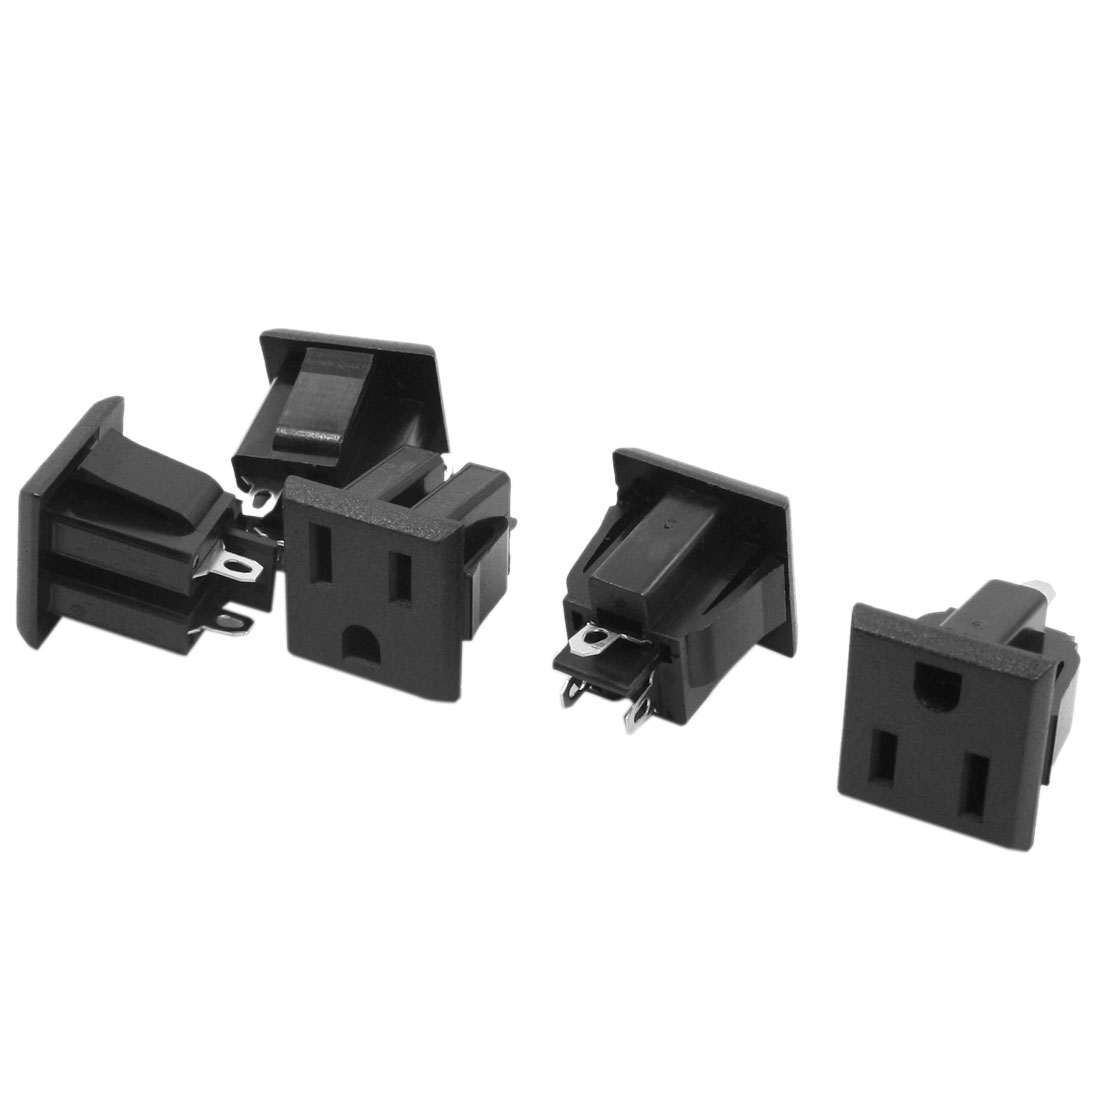 AC 125V 15A US Plug Socket PCB Board Power Supply Adapter 5Pcs